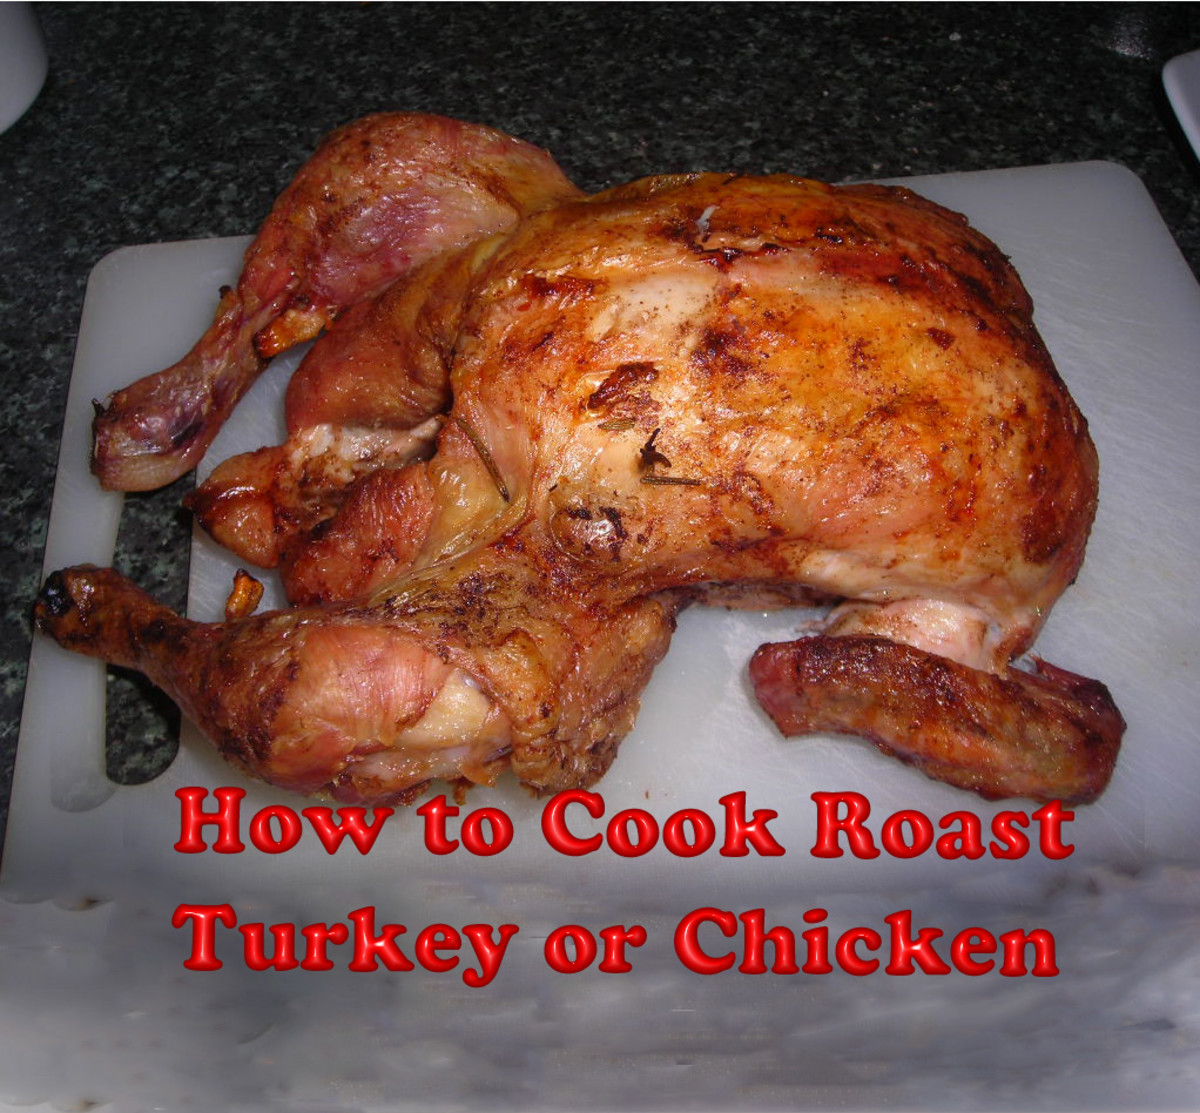 How to Cook Roast Turkey or Chicken - Keep This Recipe for Your Sunday Dinner